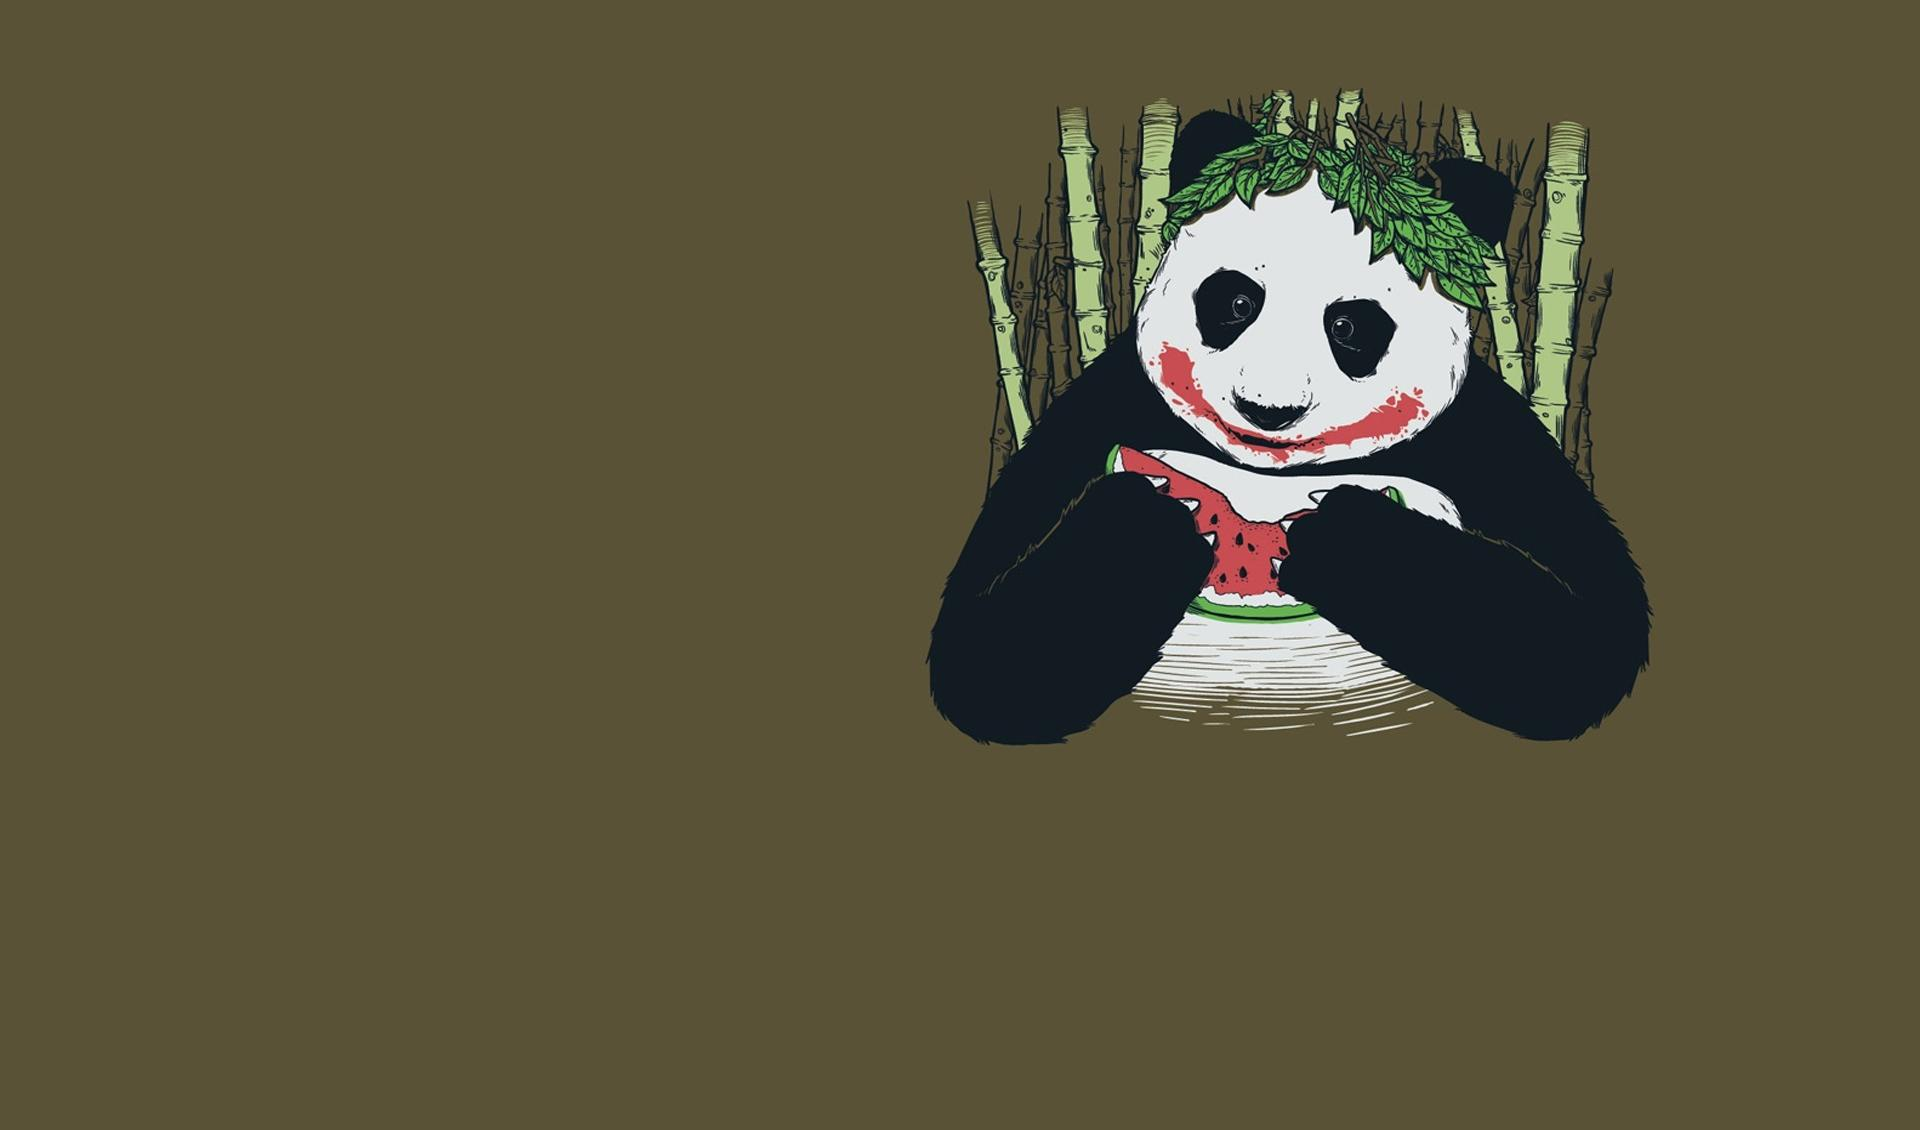 Panda eating watermelon wallpapers HD quality